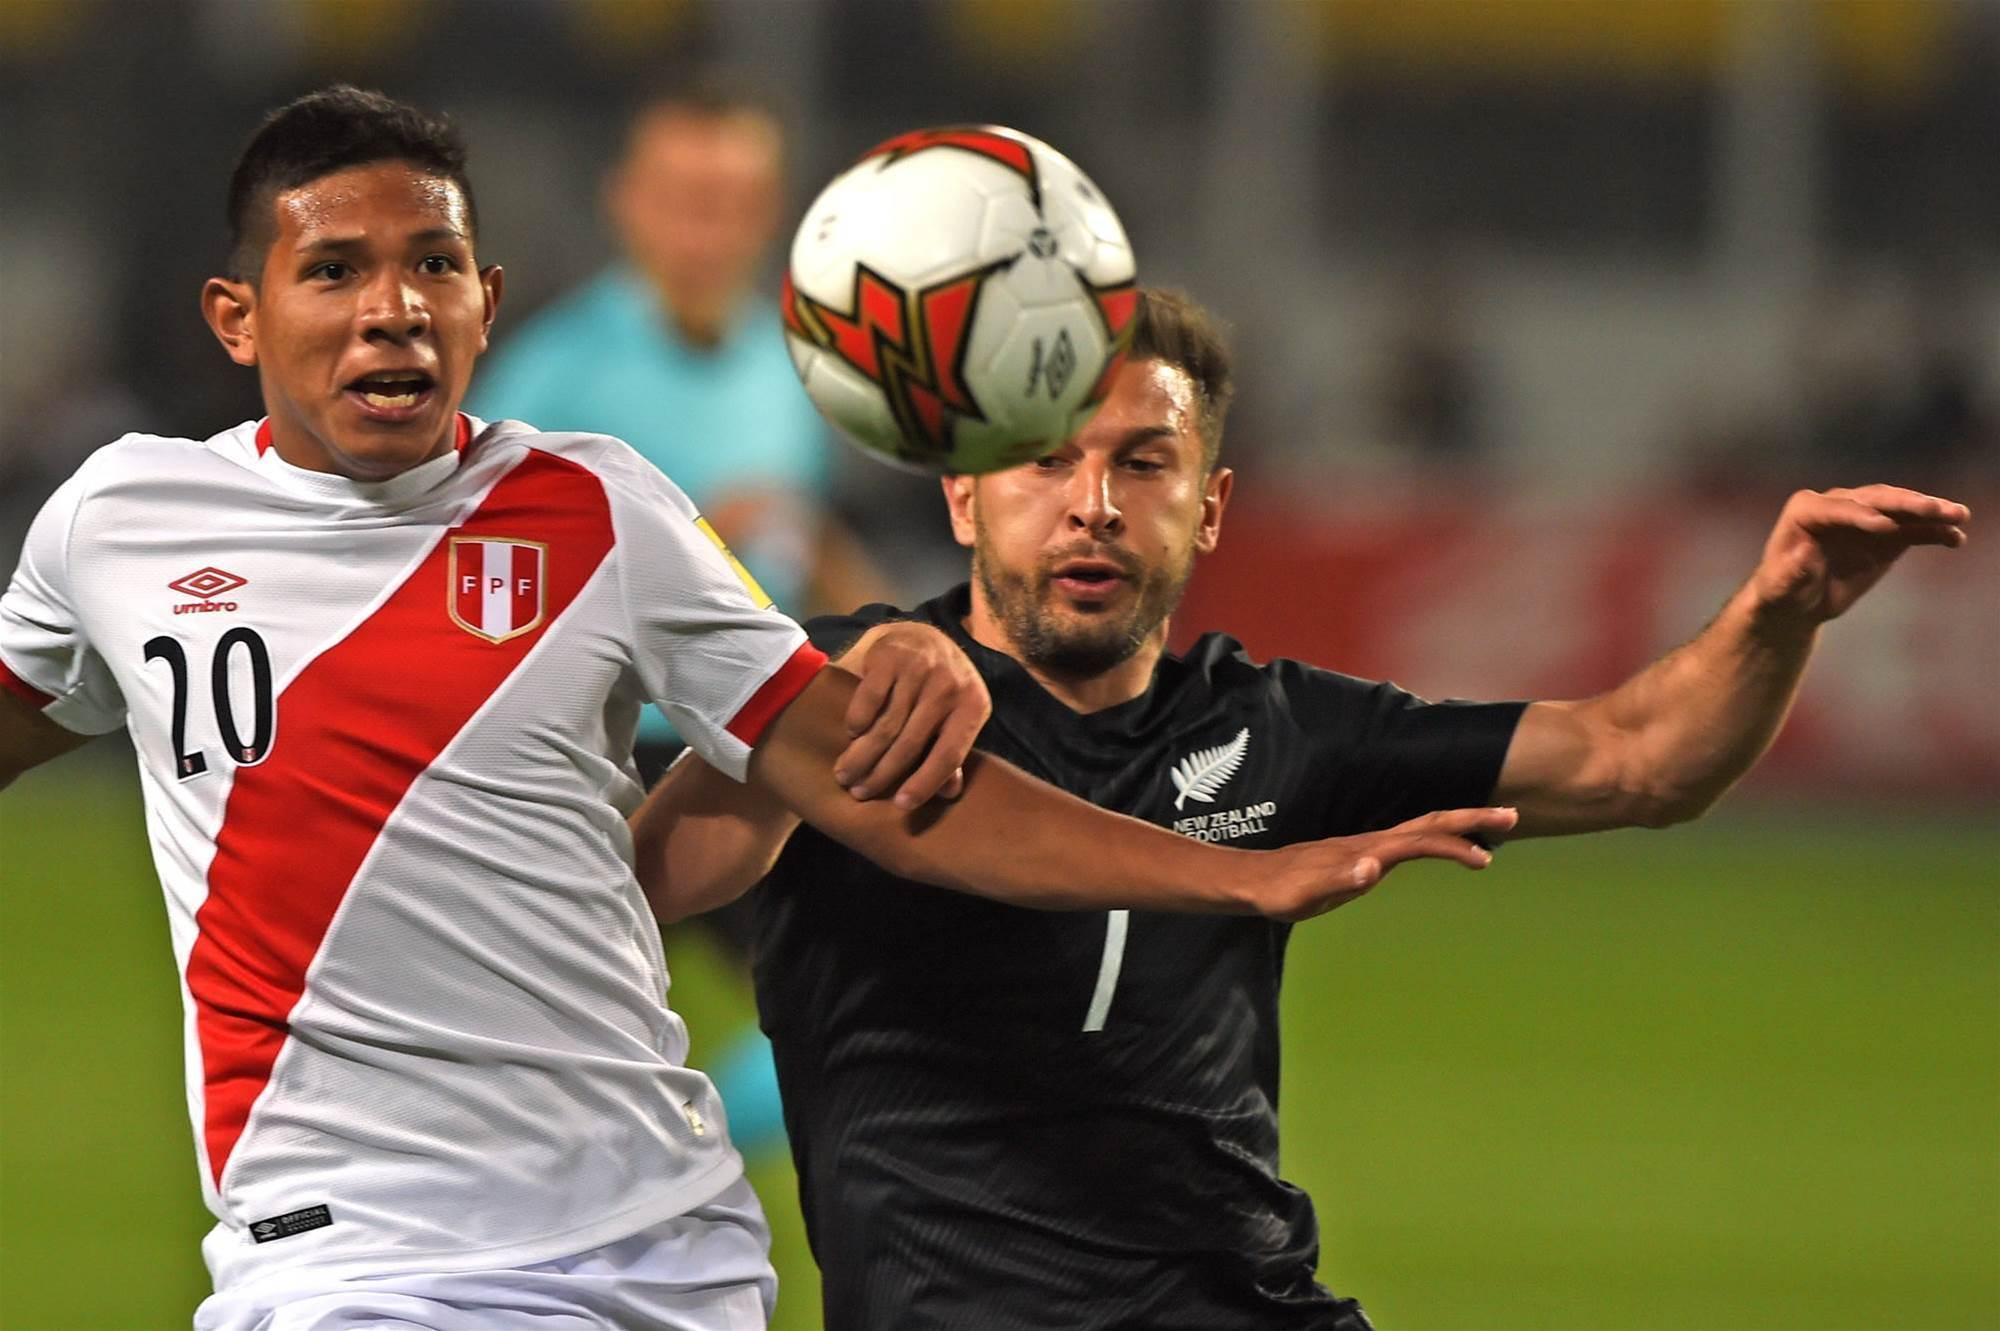 Peru fined for lasers on All Whites